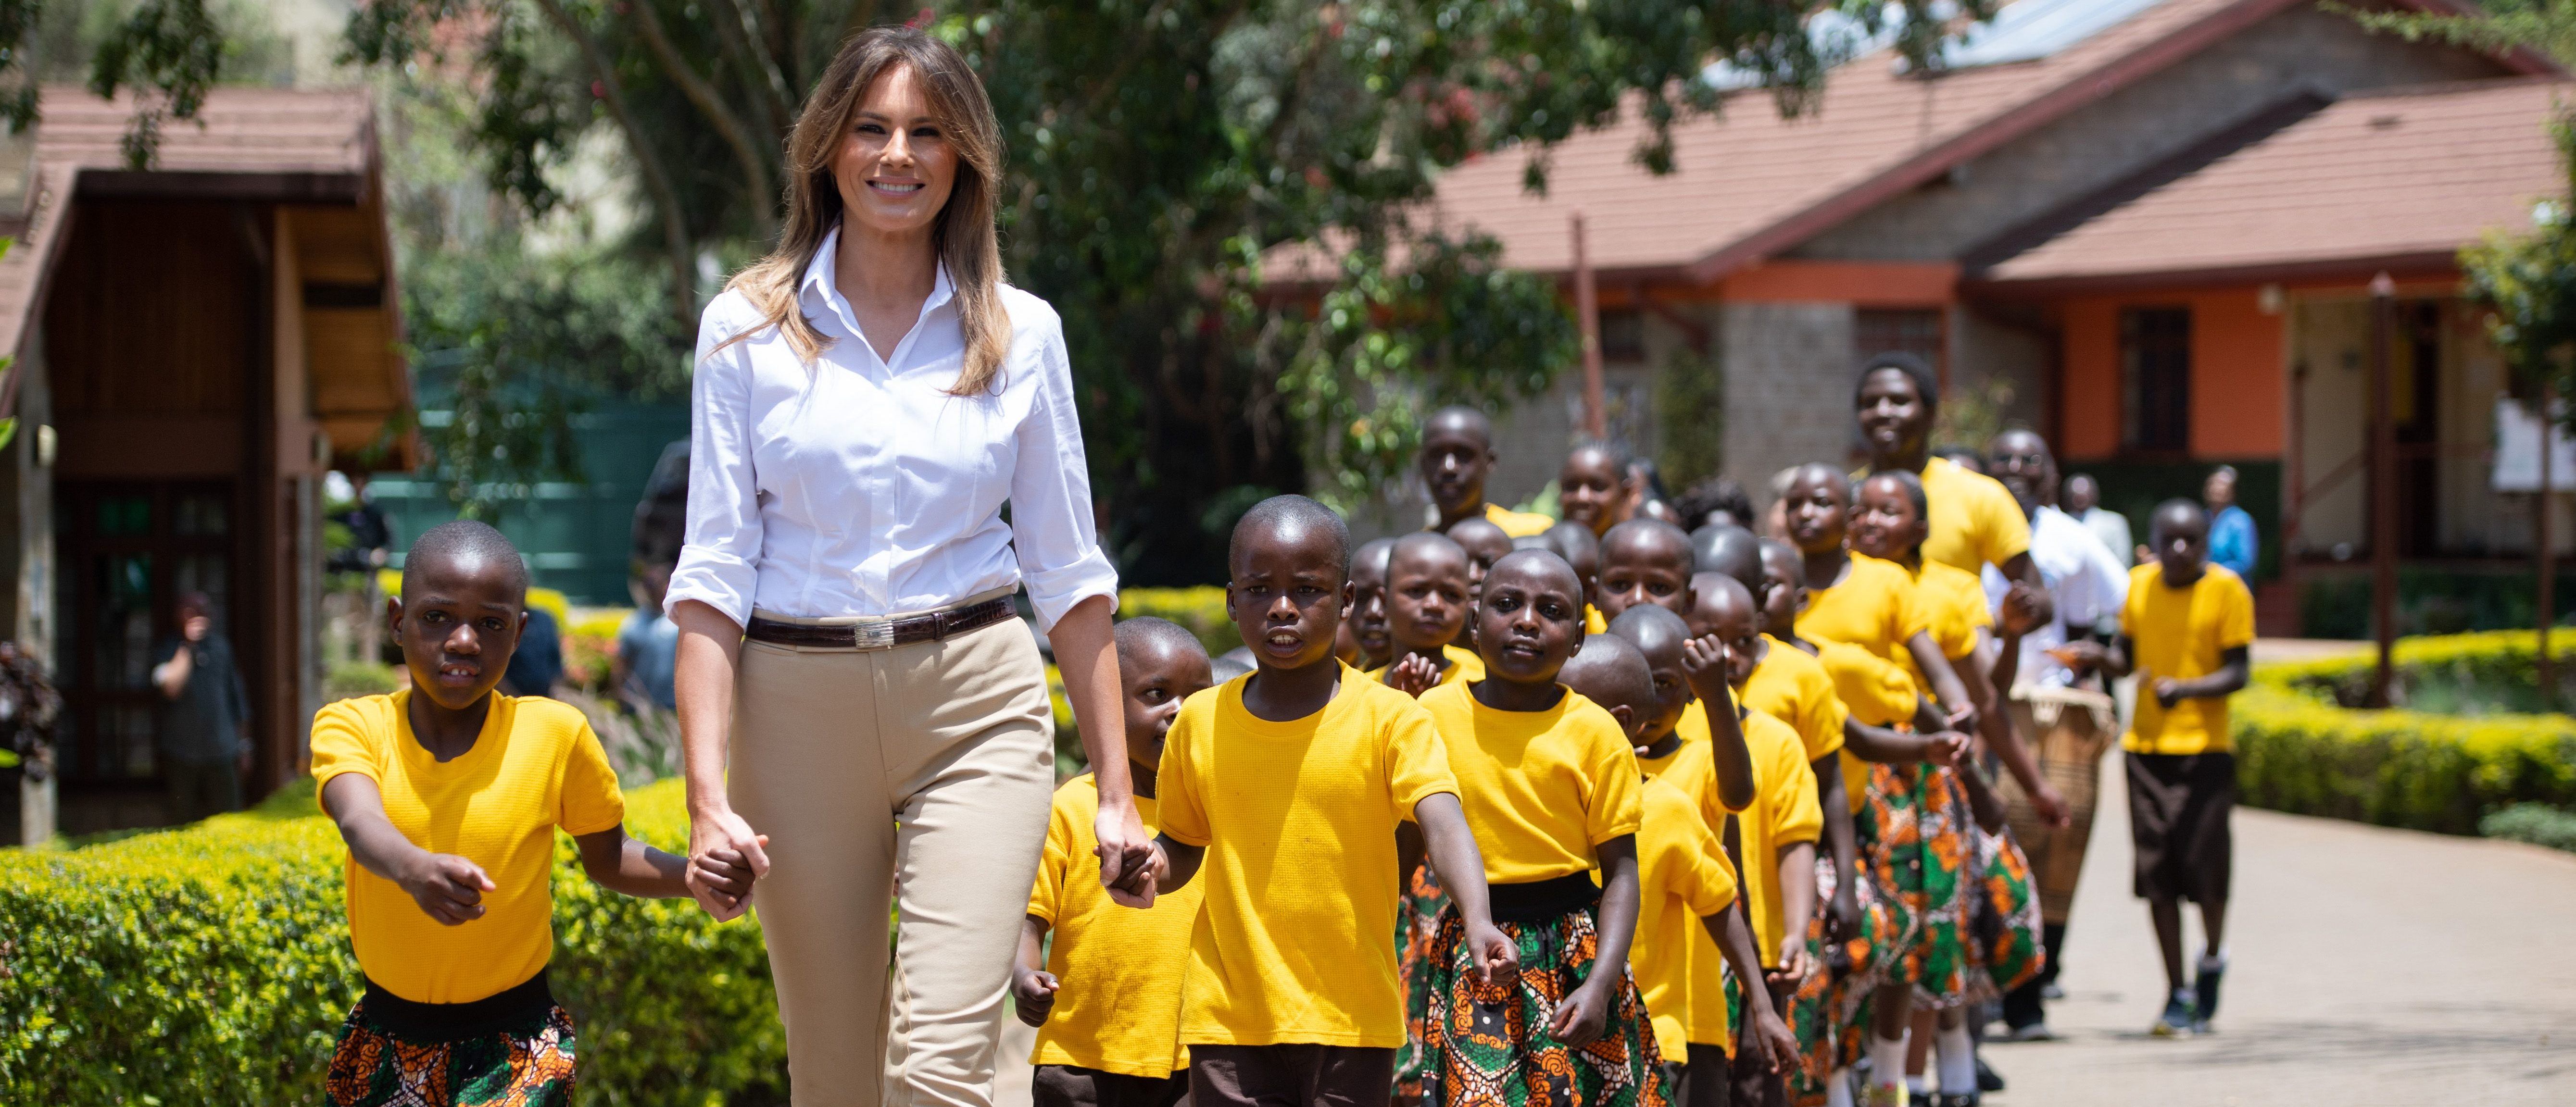 TOPSHOT - US First Lady Melania Trump walks and sings with children as she visits the Nest Childrens Home Orphanage in Nairobi, on October 5, 2018, which primarily cares for children whose parents have been incarcerated. (Photo by SAUL LOEB / AFP) (Photo credit should read SAUL LOEB/AFP/Getty Images)